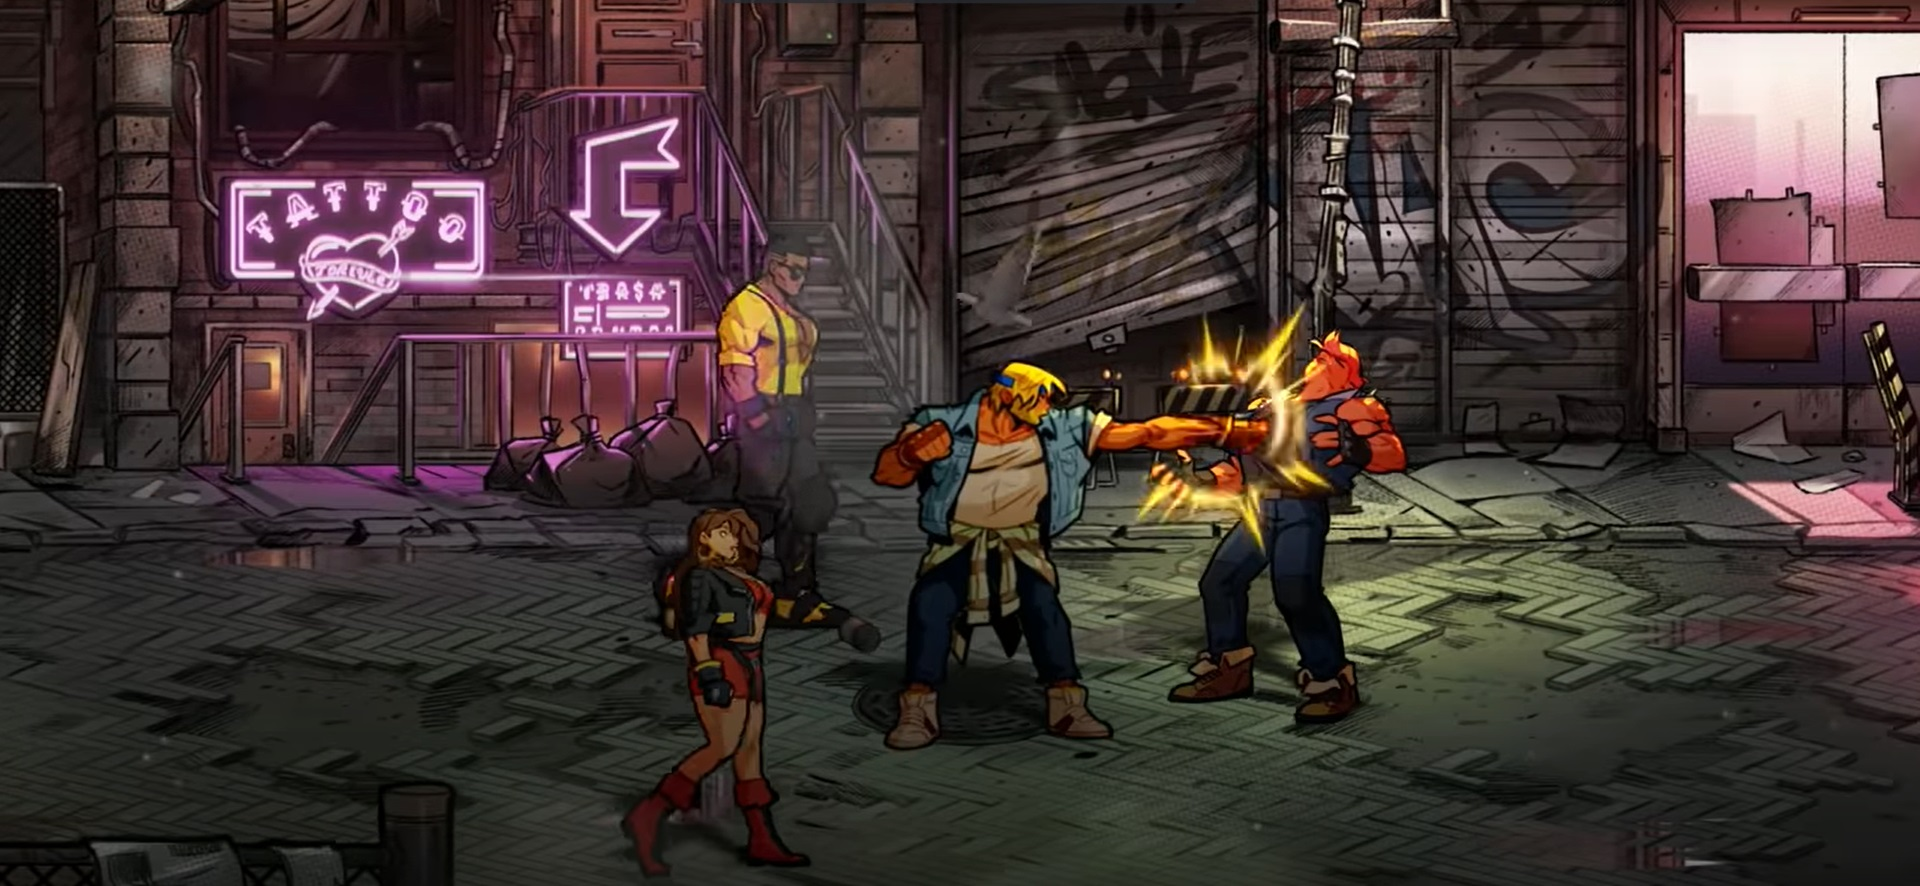 Análise: Streets of Rage 4